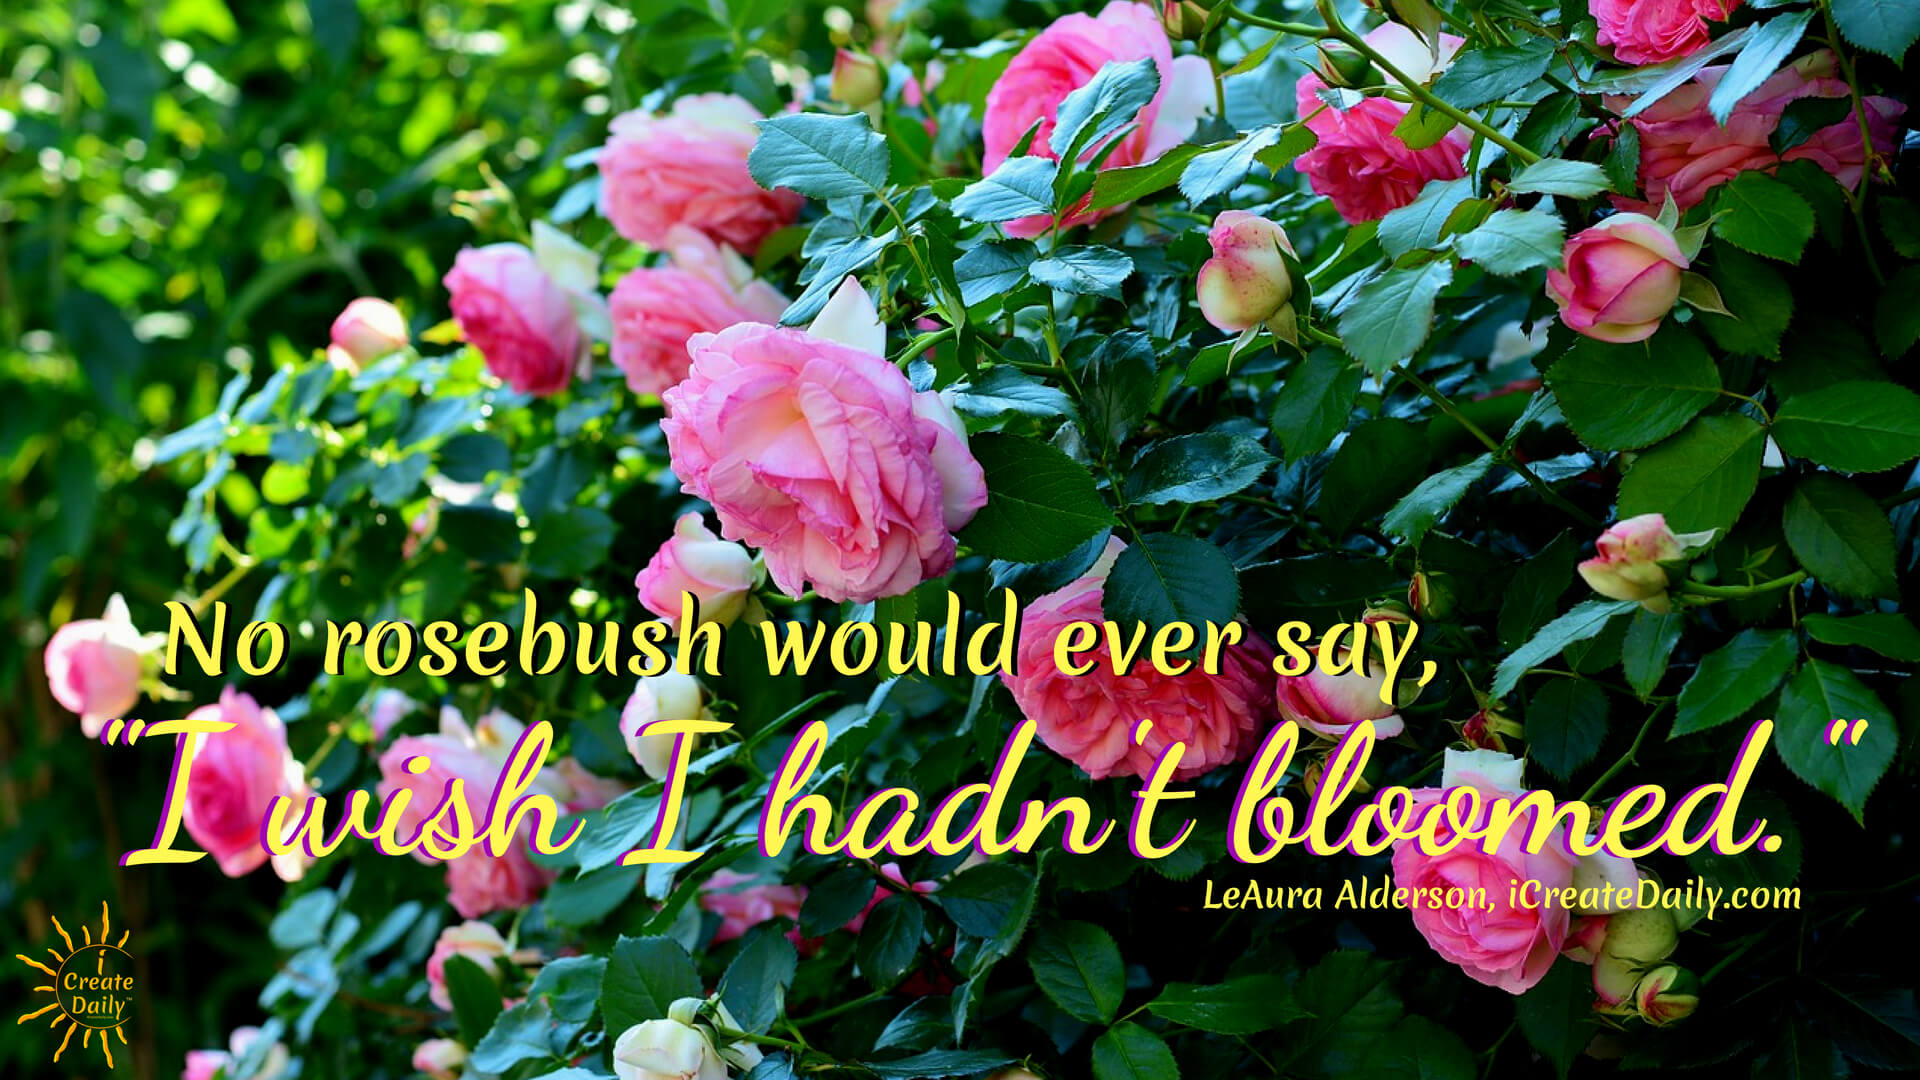 """No rosebush would ever say, 'I wish I hadn't bloomed... it was easier just putting out leaves.'"""" ~LeAura Alderson, cofounder-iCreateDaily® #BeYourBestSelf #YourBestSelf #RosebushQuote #GardenQuote #FlowerQuote #RoseMetaphor"""